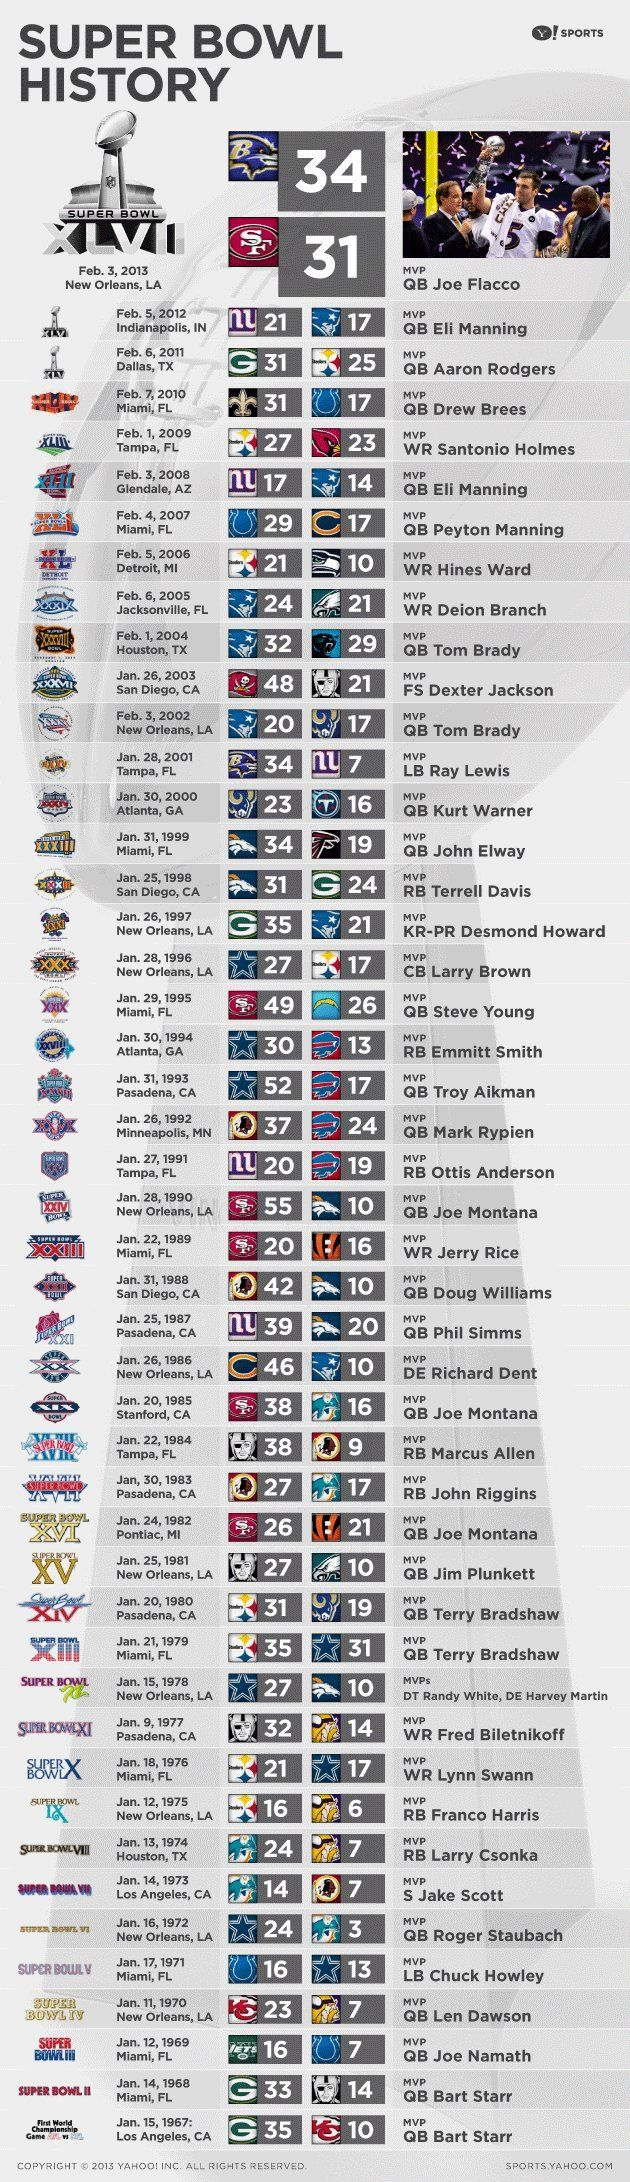 From Super Bowl I to Super Bowl XLVII, see every Super Bowl champ & MVP (via @Yahoo!! Sports)